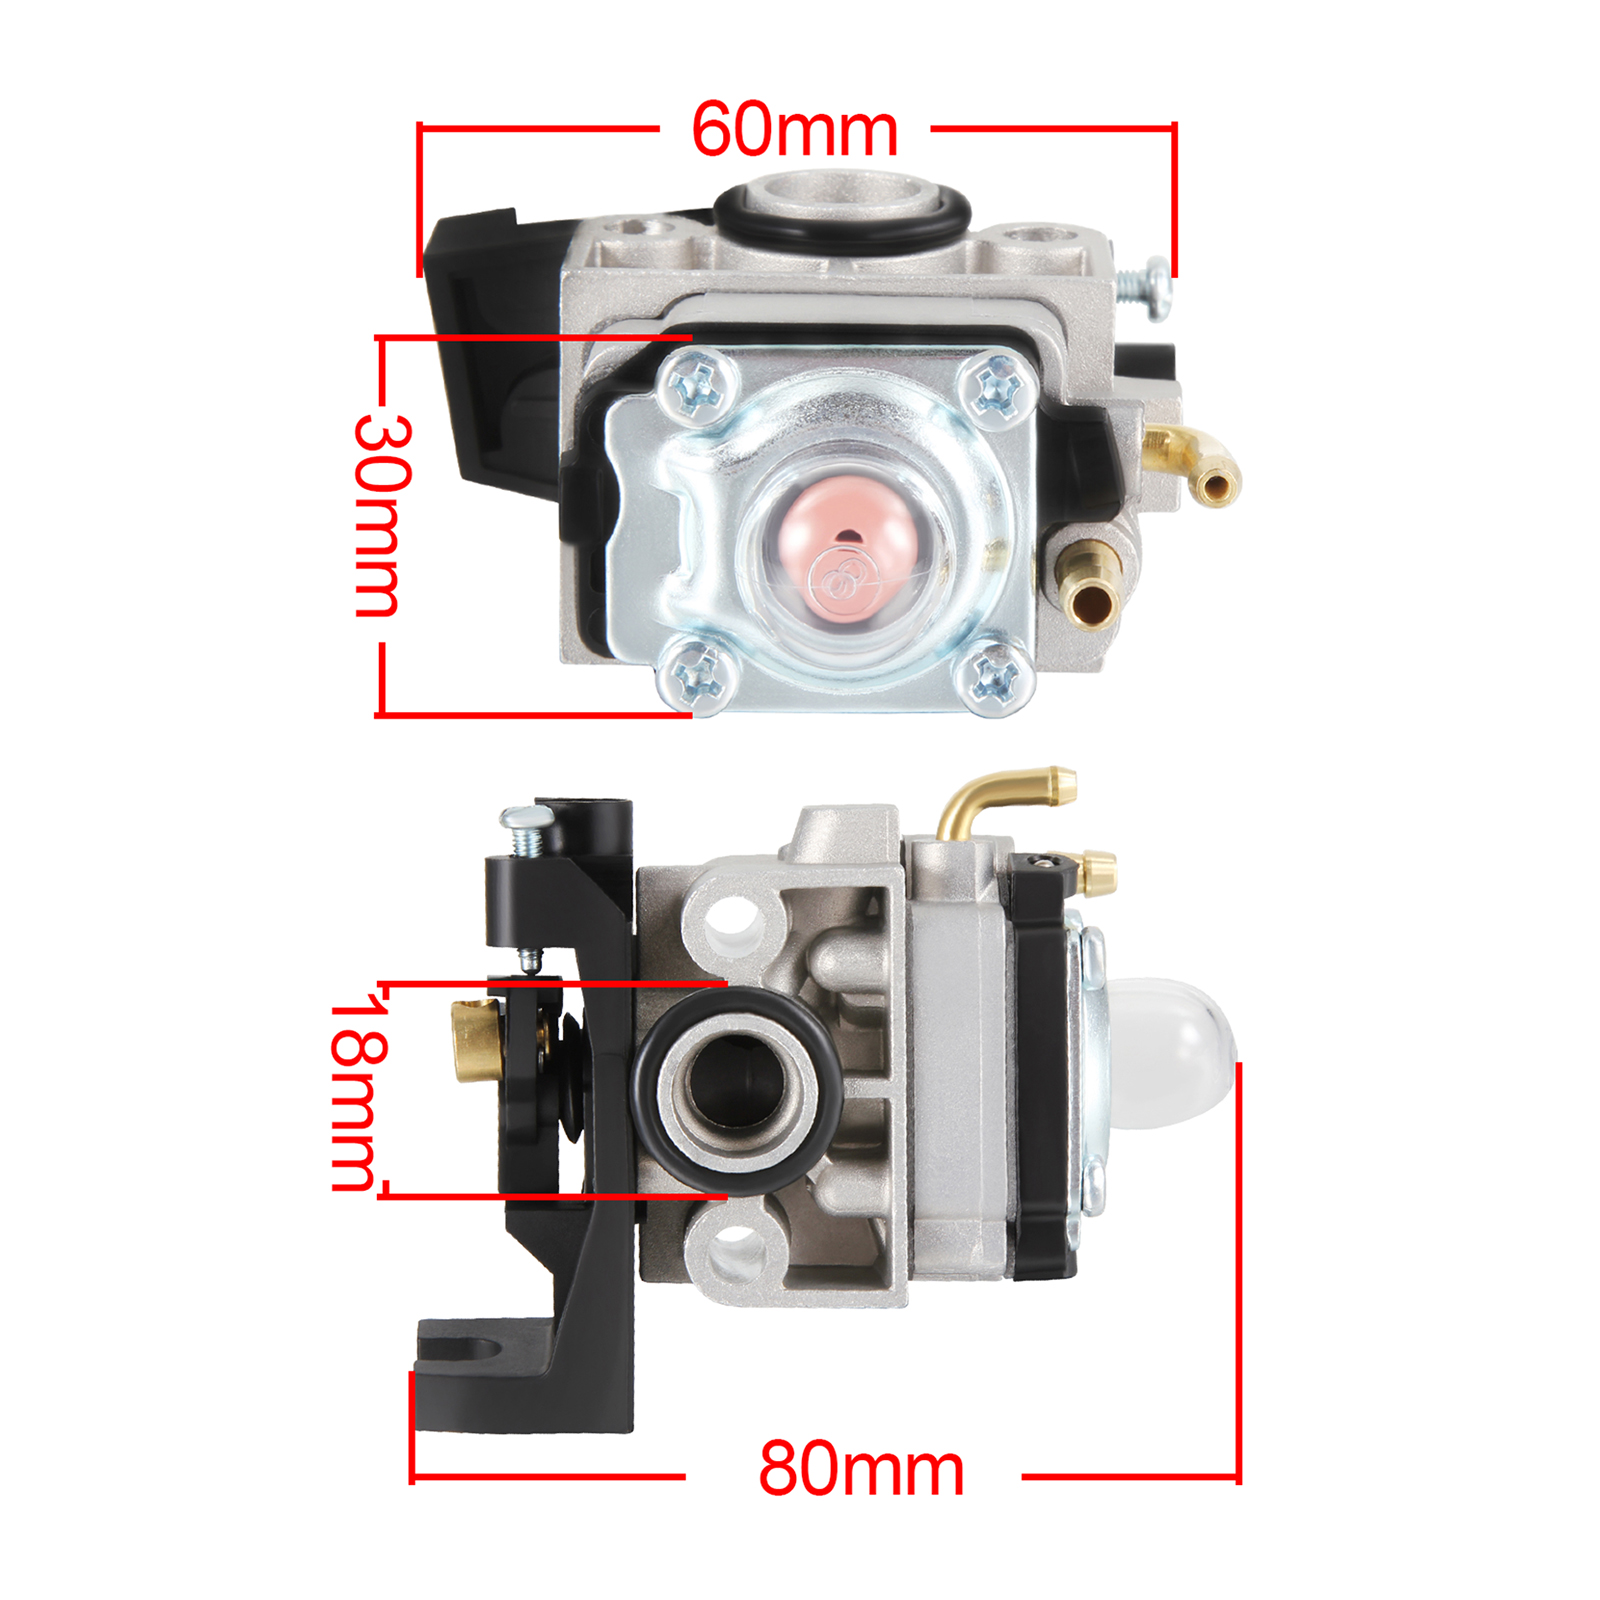 carburetor fits honda gx gx engine whipper snipper trimmer carburettor carby  ebay